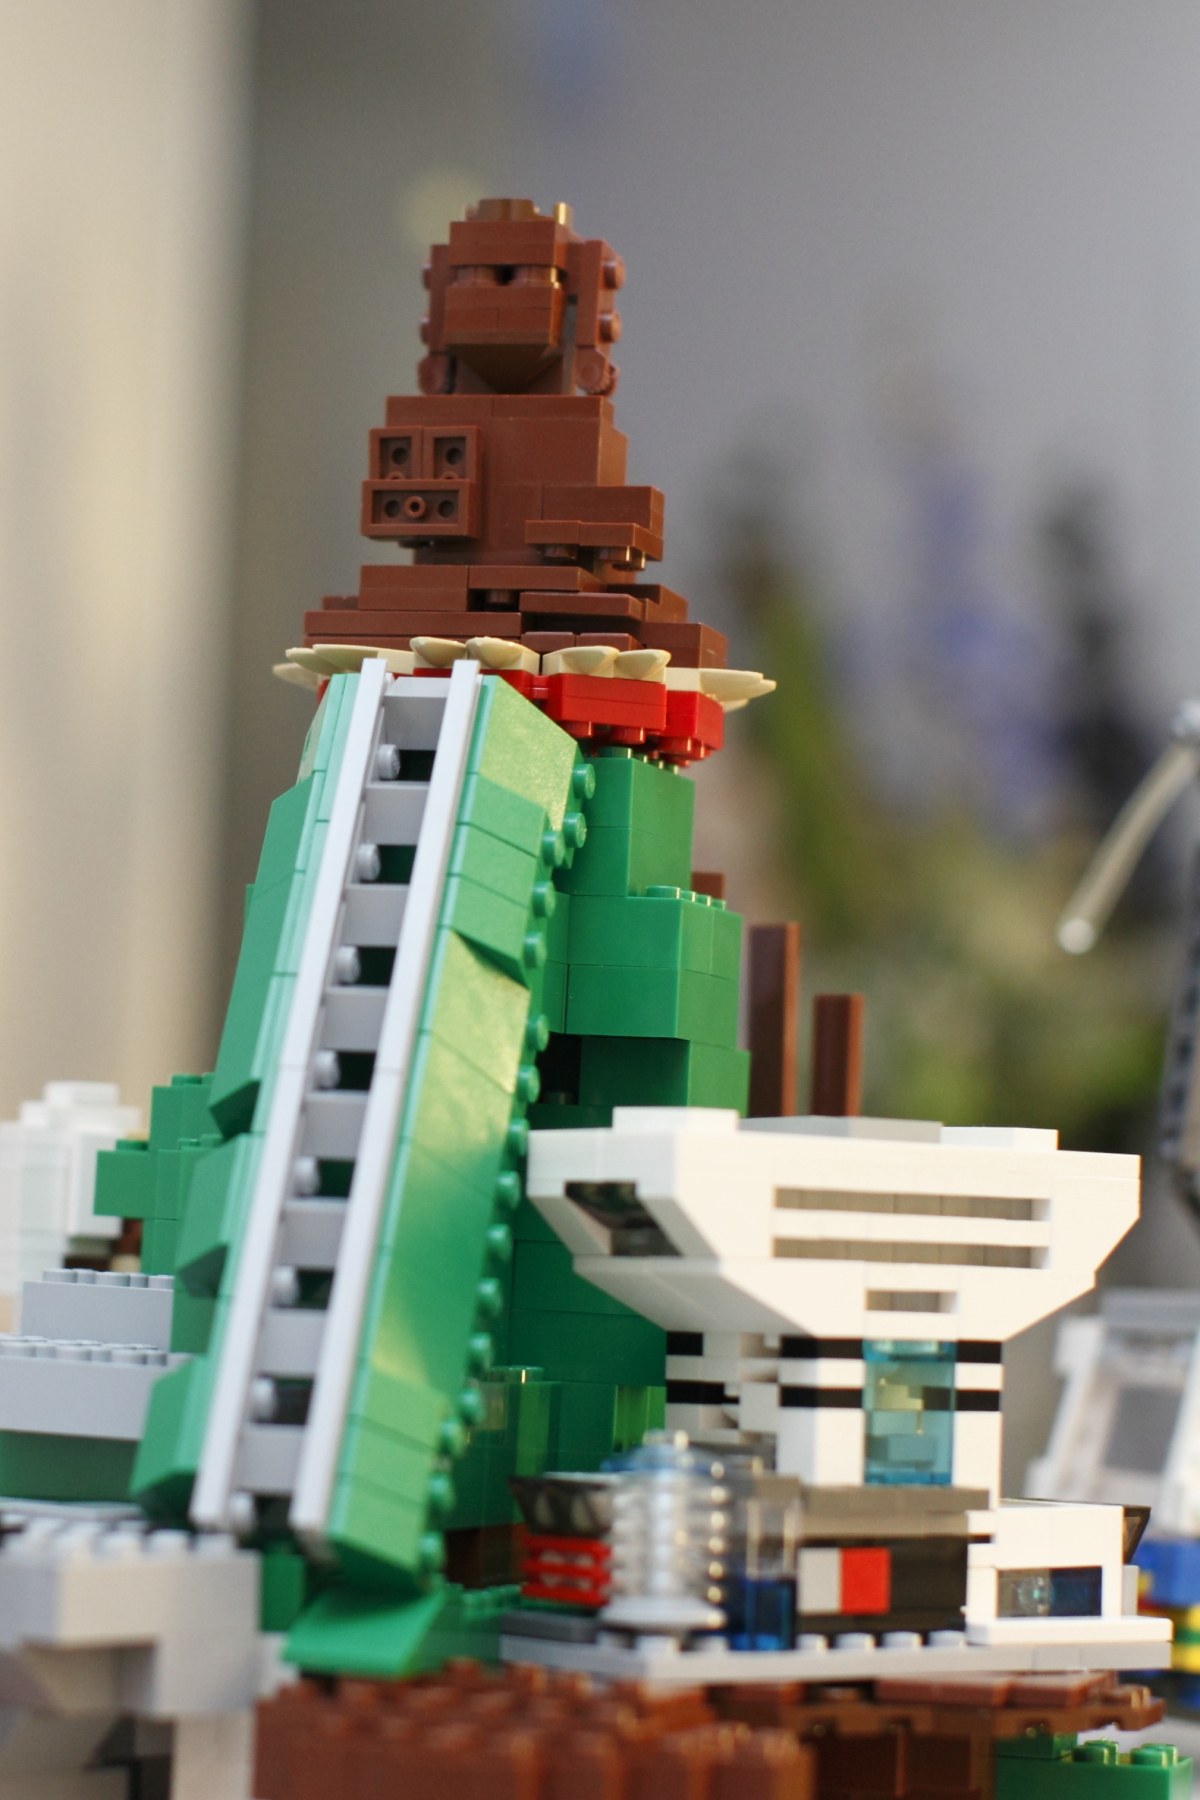 lego2010-ck-hightlight-5s.jpg